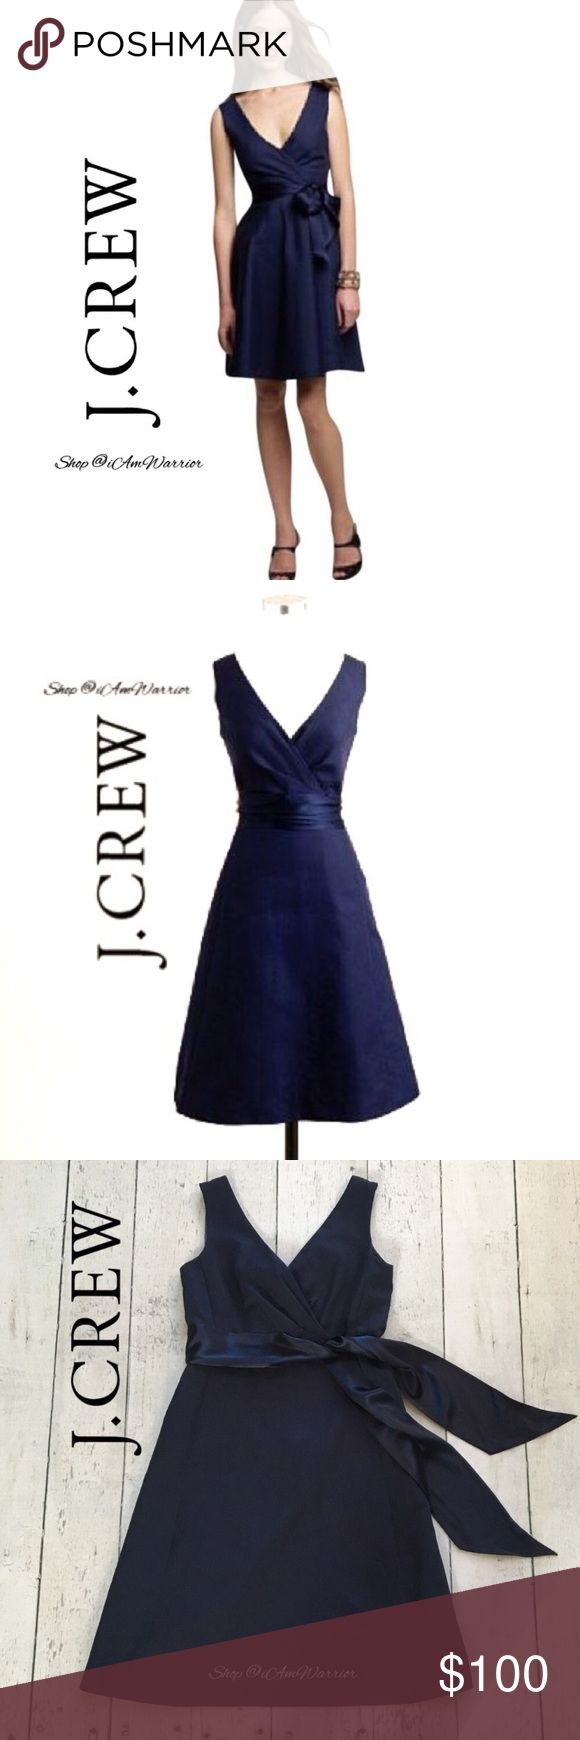 J. Crew navy Serena cotton cady belted dress Classic and elegant J. Crew fully lined navy blue sleeveless cotton cady dress with satin tie belt. Can tie in back or in front. V-beck/surplice neckline, A-line silhouette. Excellent condition, smoke free home. Please read my bio regarding closet policies prior to any inquiries. J. Crew Dresses